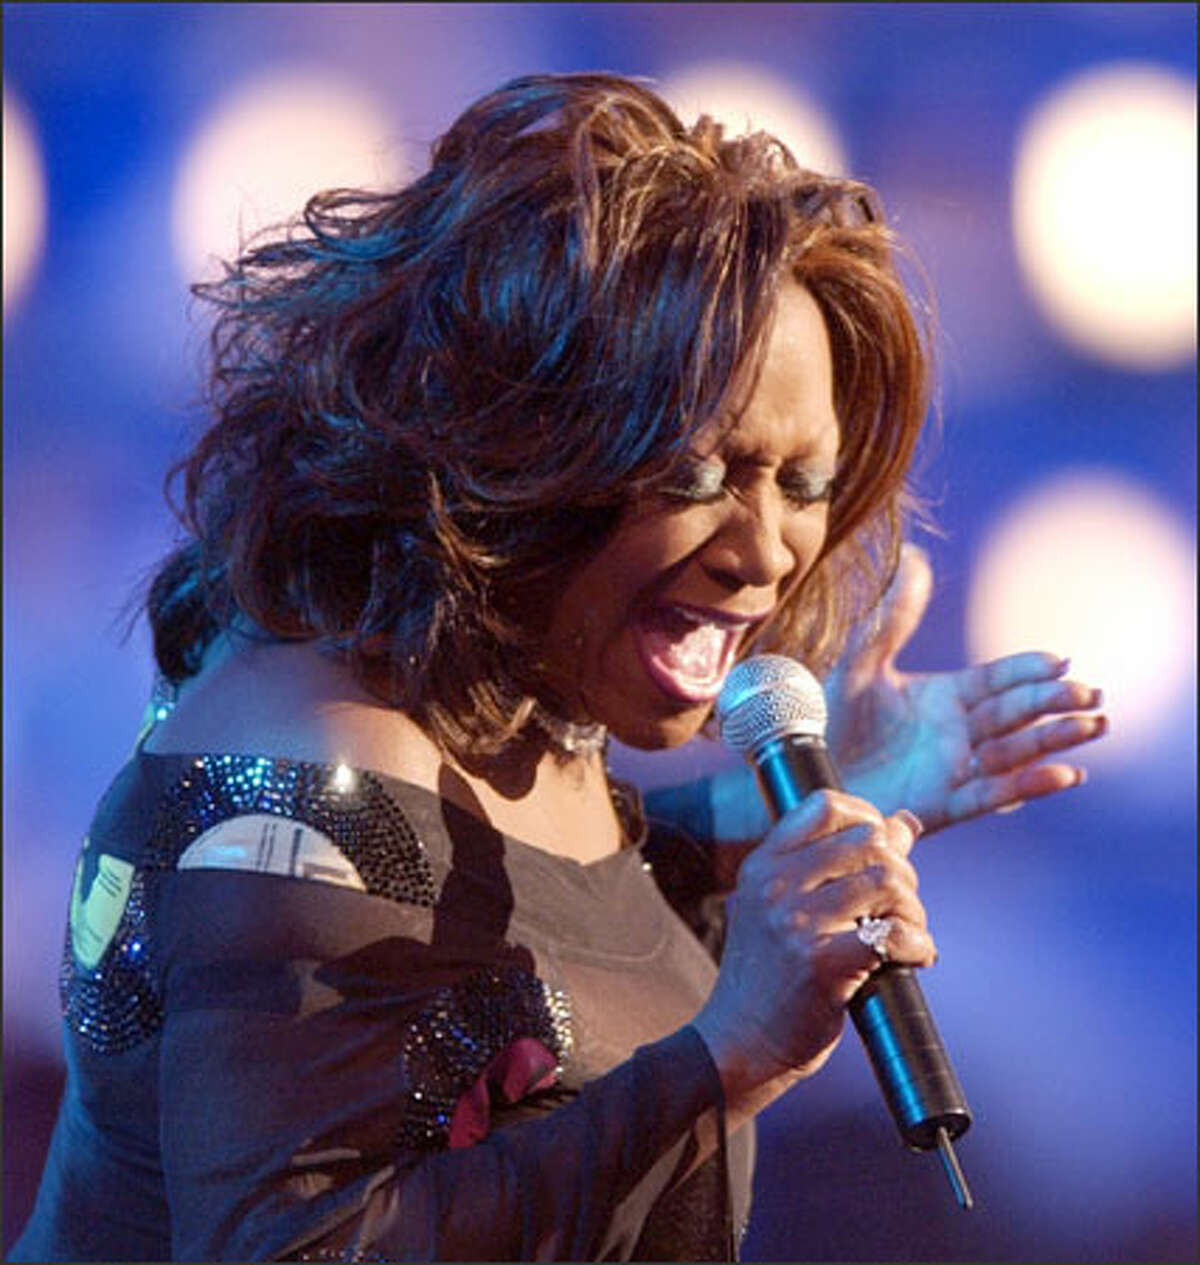 Singer Patti LaBelle says she never lip-synchs at shows.